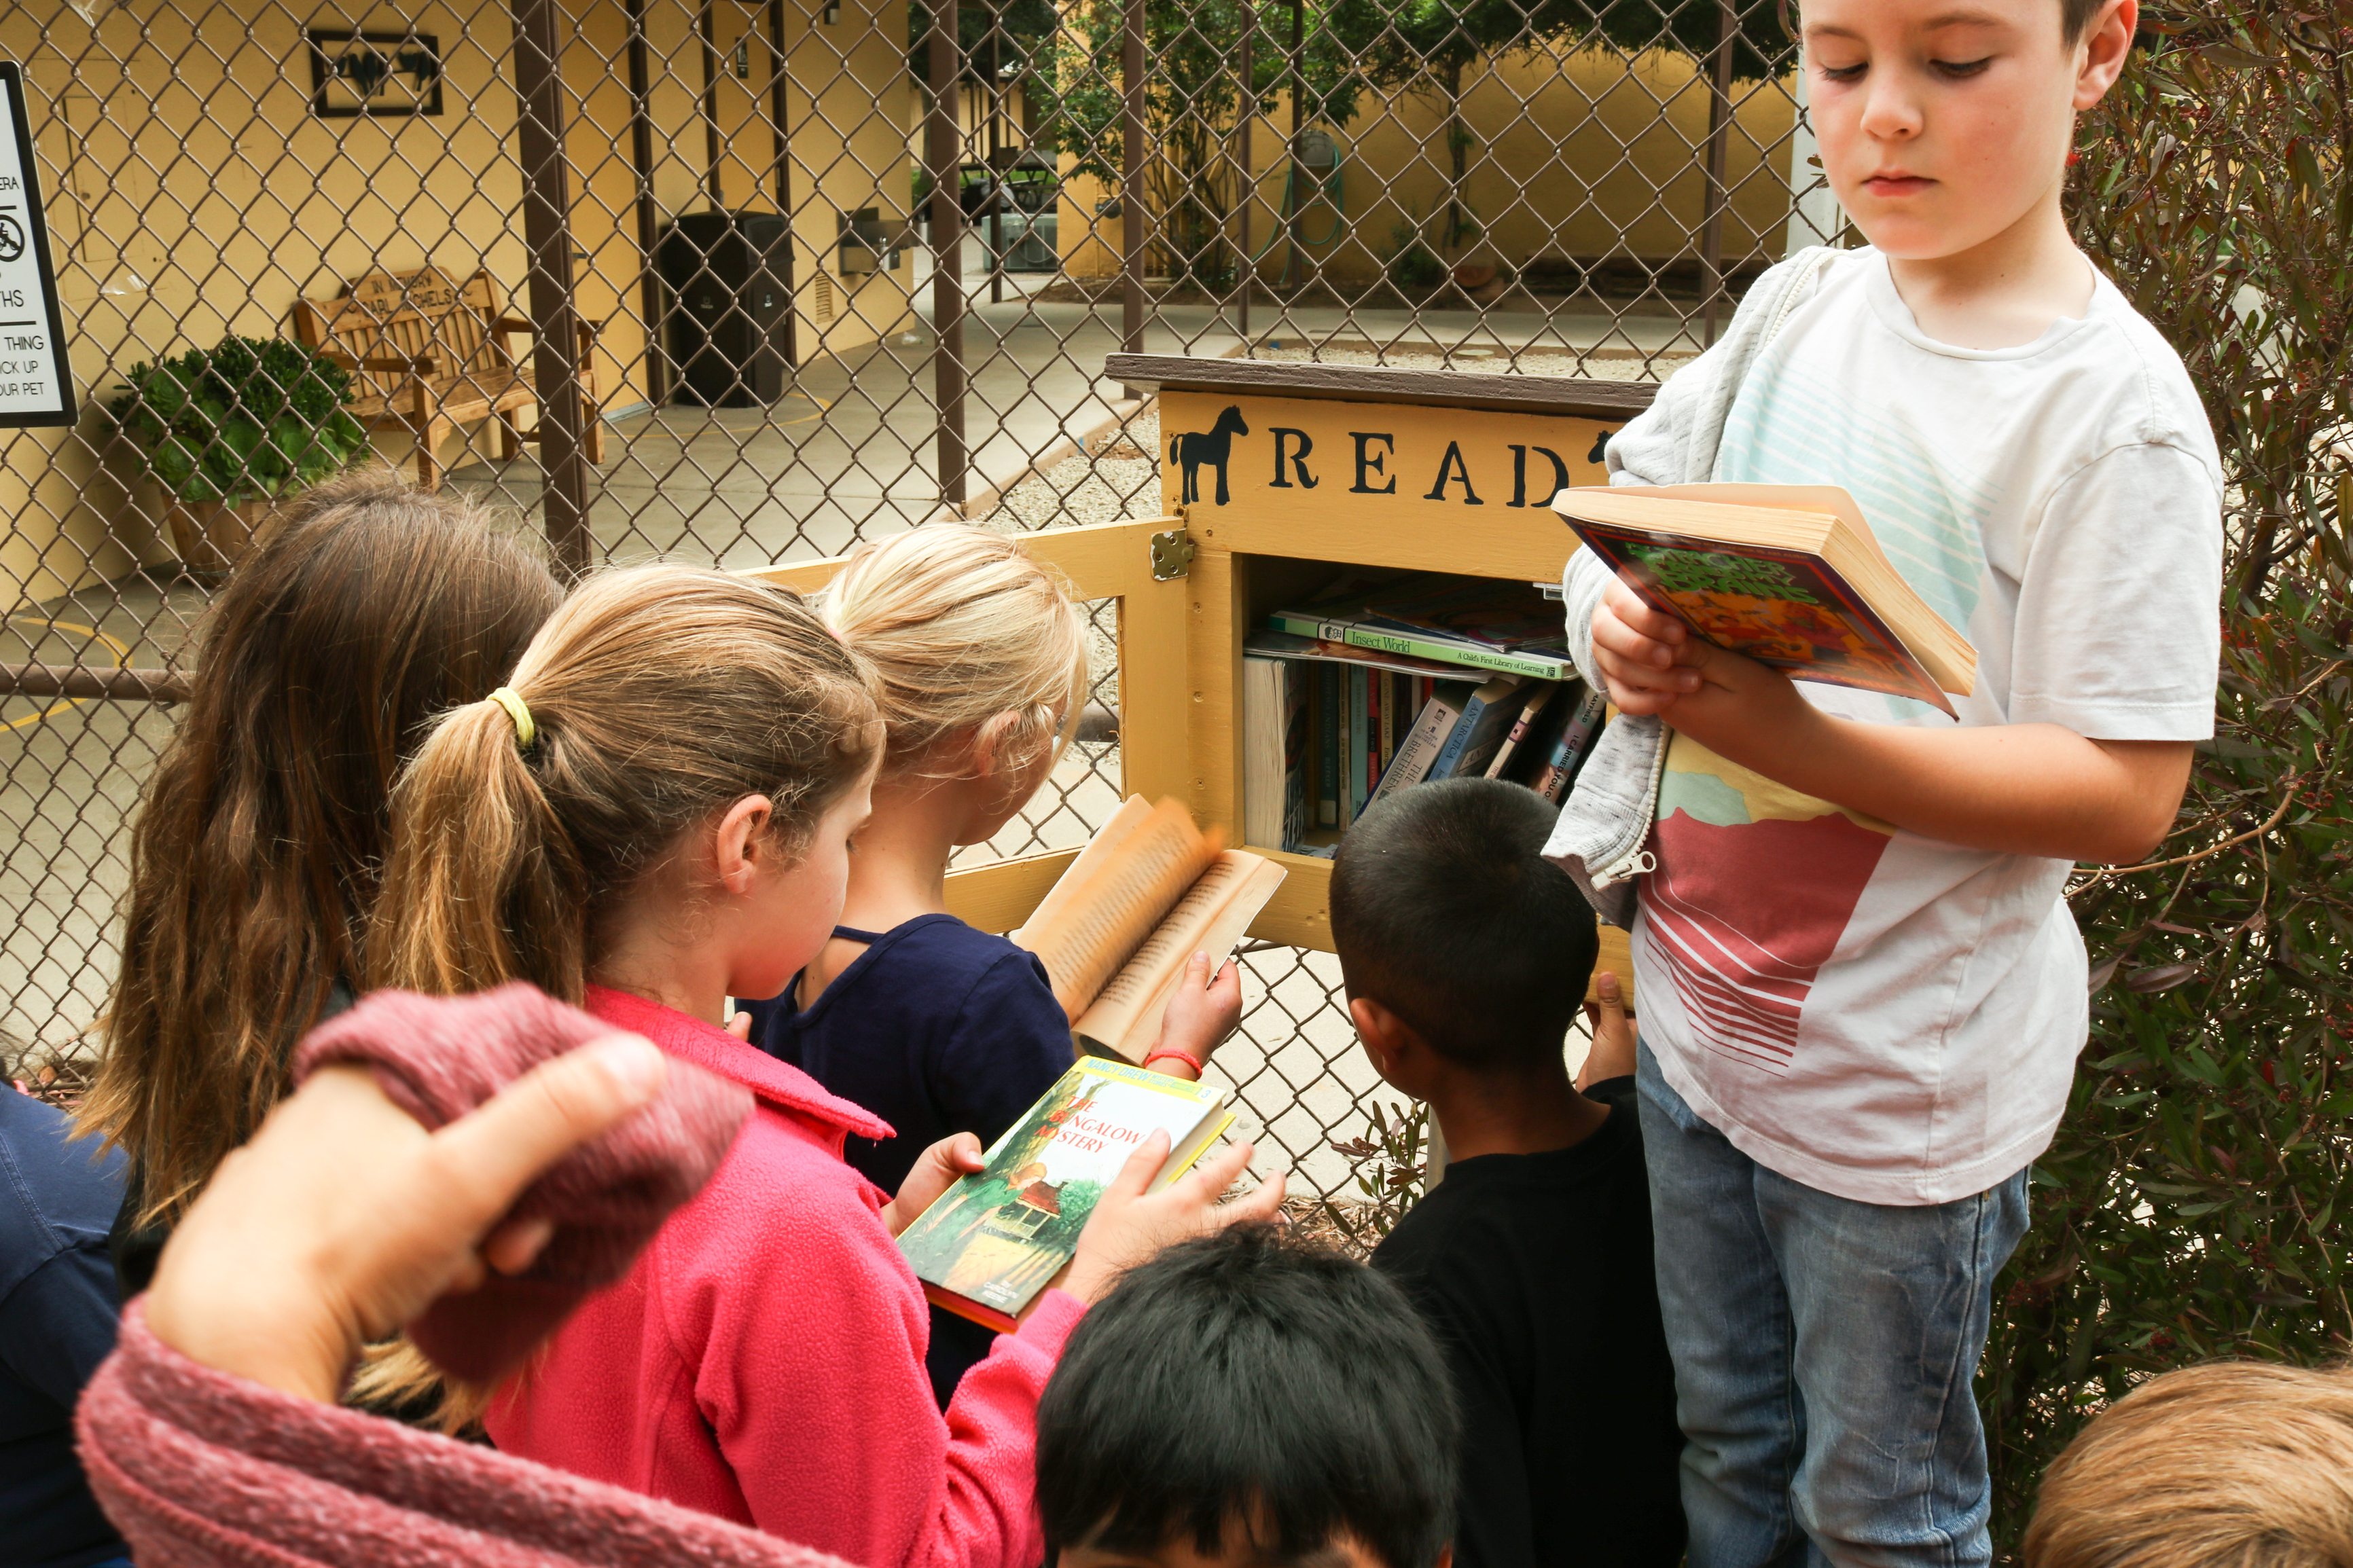 A group of kids all taking a couple of books from a Reading box installed on the school's grouds.